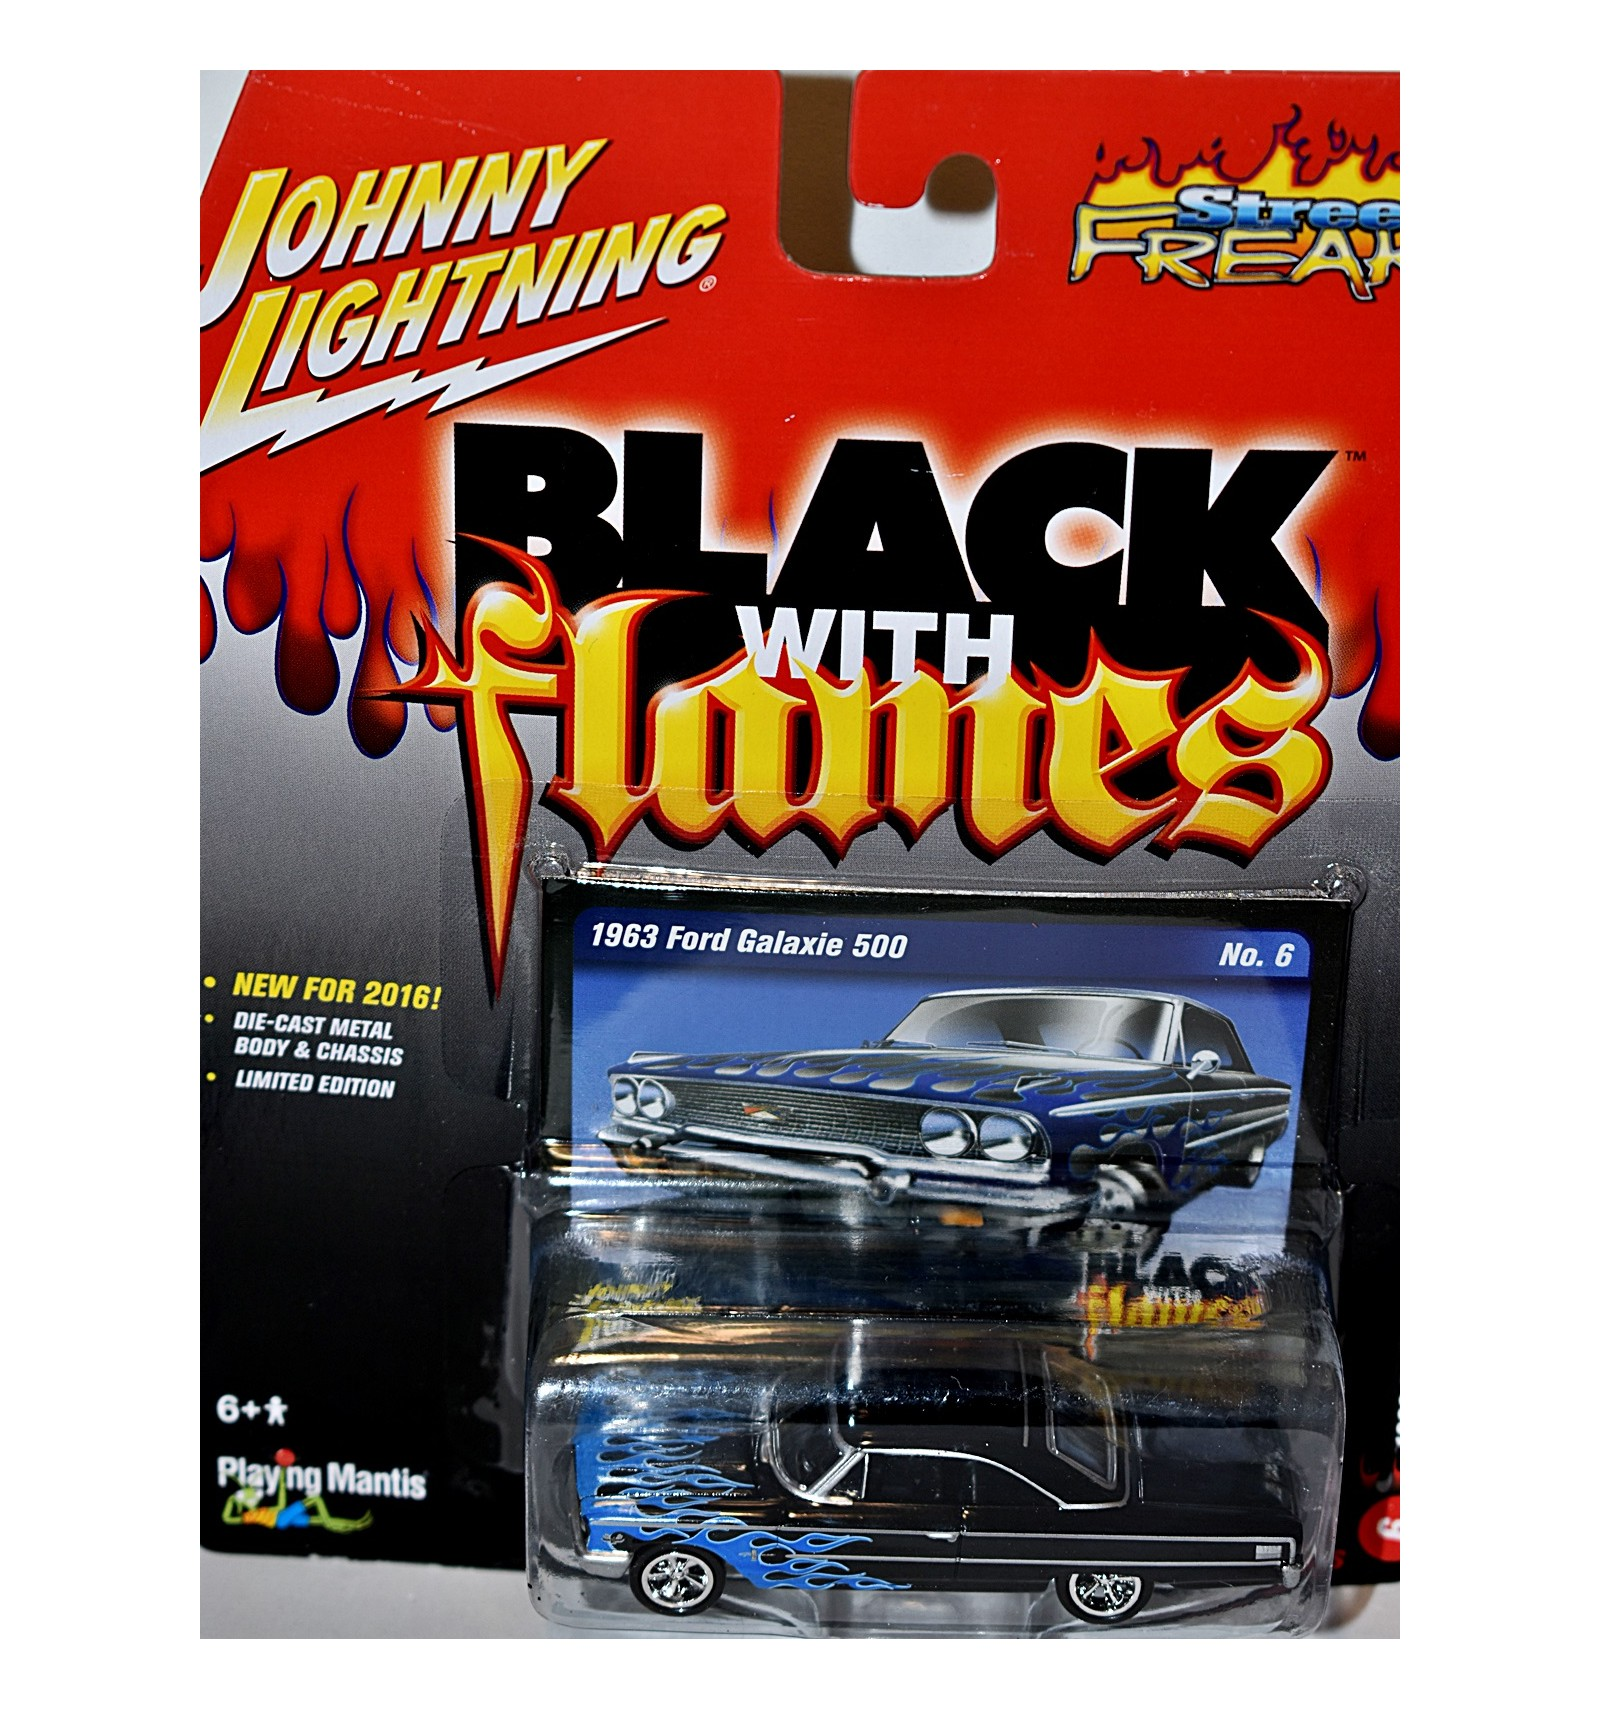 Johnny Lighnting Black with Flames - 1963 Ford Galaxie 500